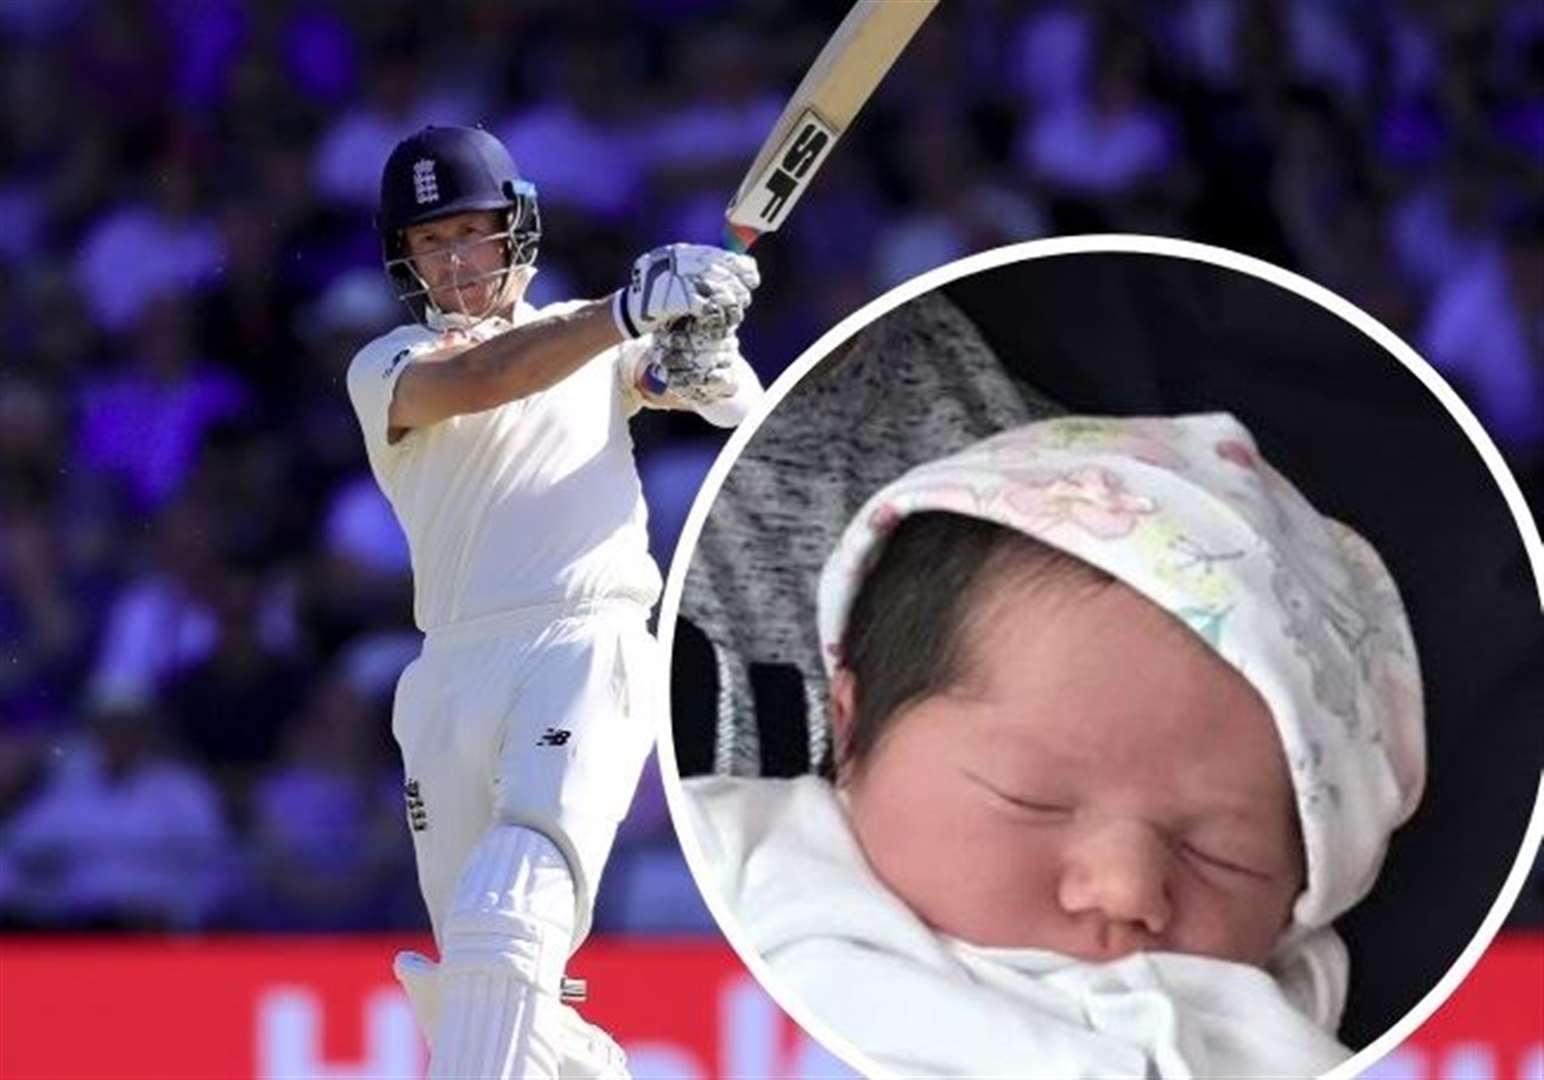 Ashes star Joe Denly welcomes baby daughter